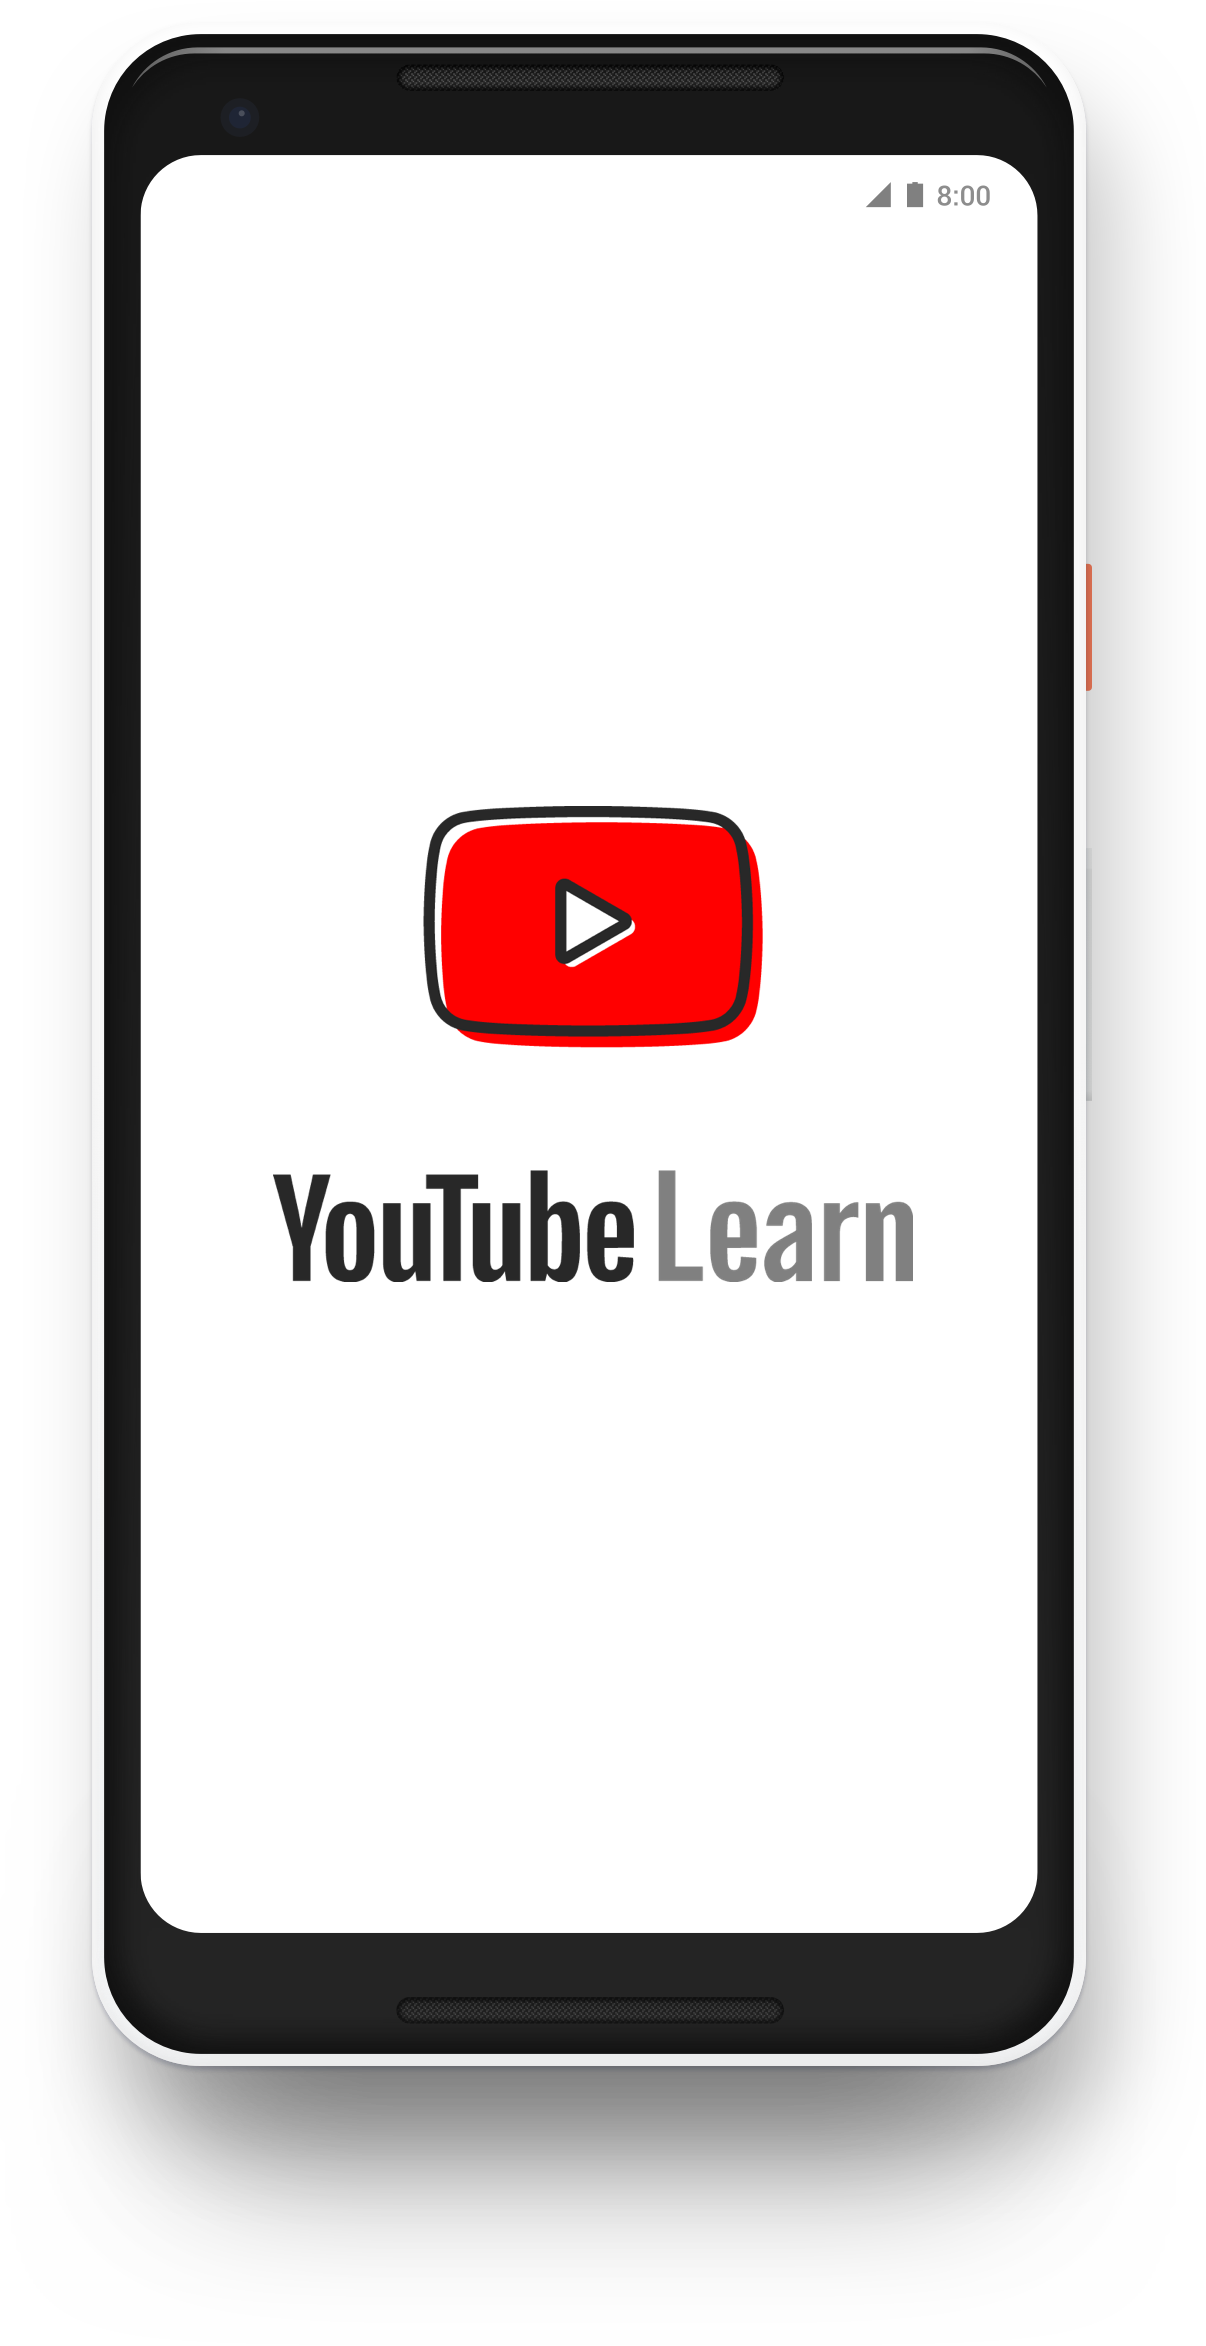 YouTube Learn Home Screen